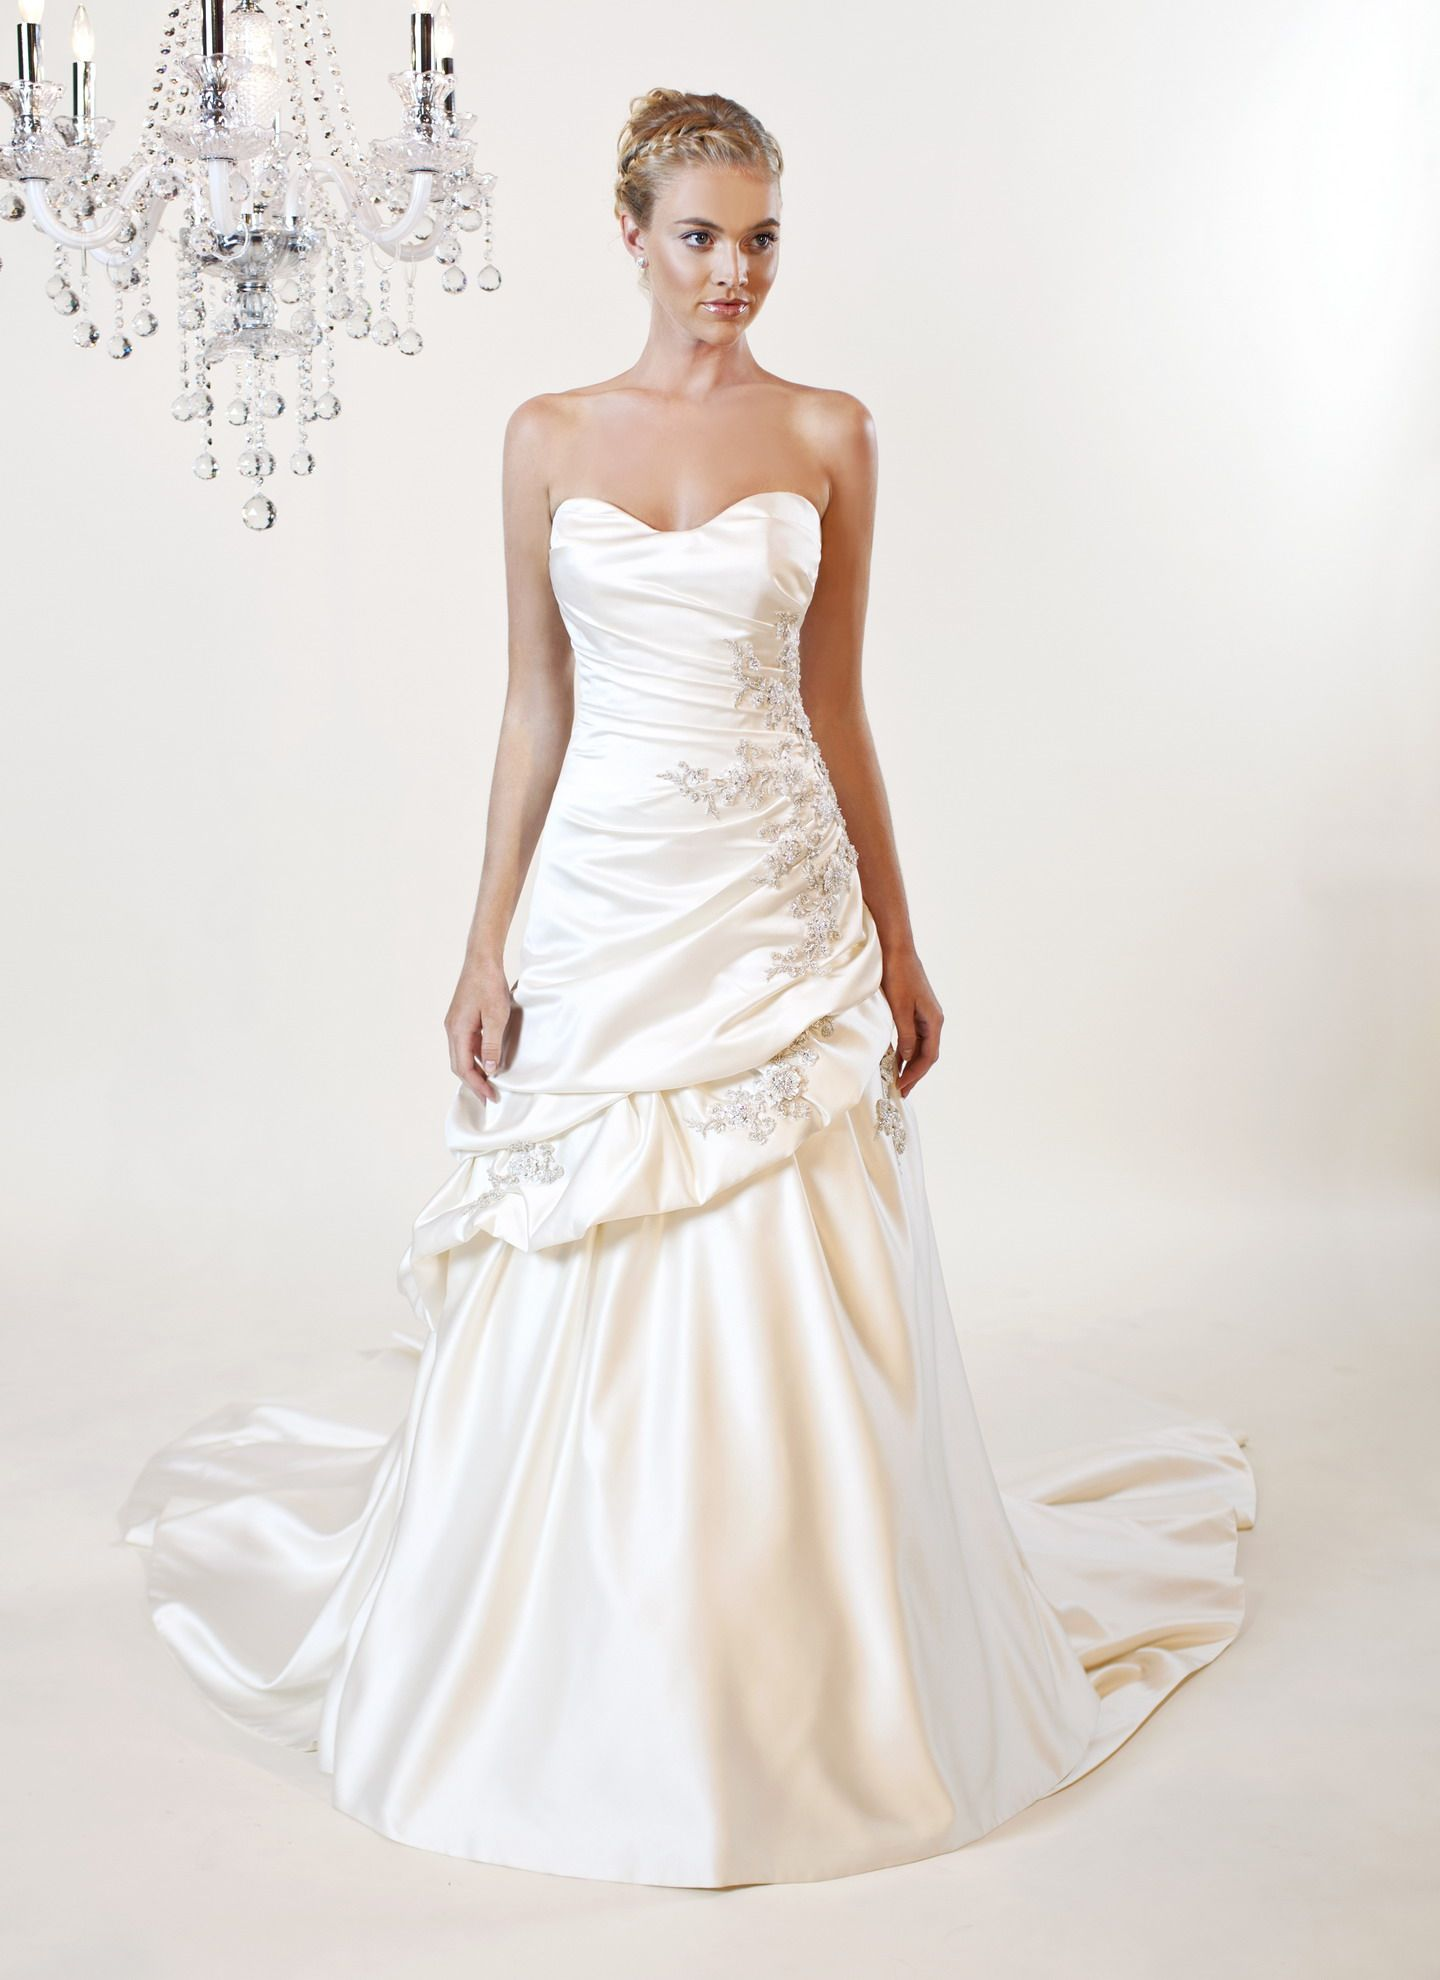 2012 Winnie Couture Bridal Collection wedding dress